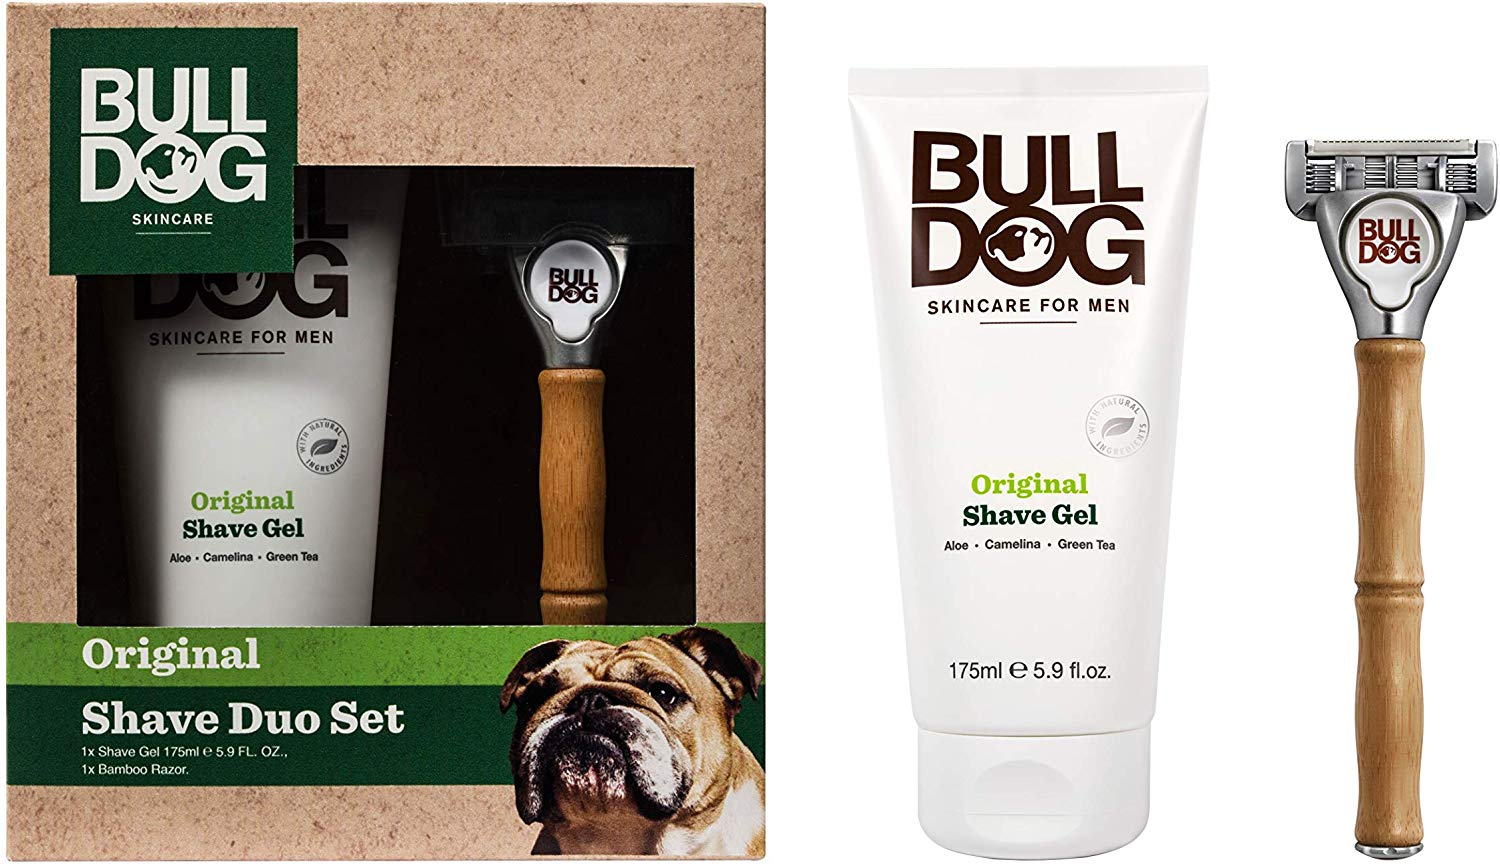 Bulldog Shave Duo Set, Pre-packaged Shaving Essentials